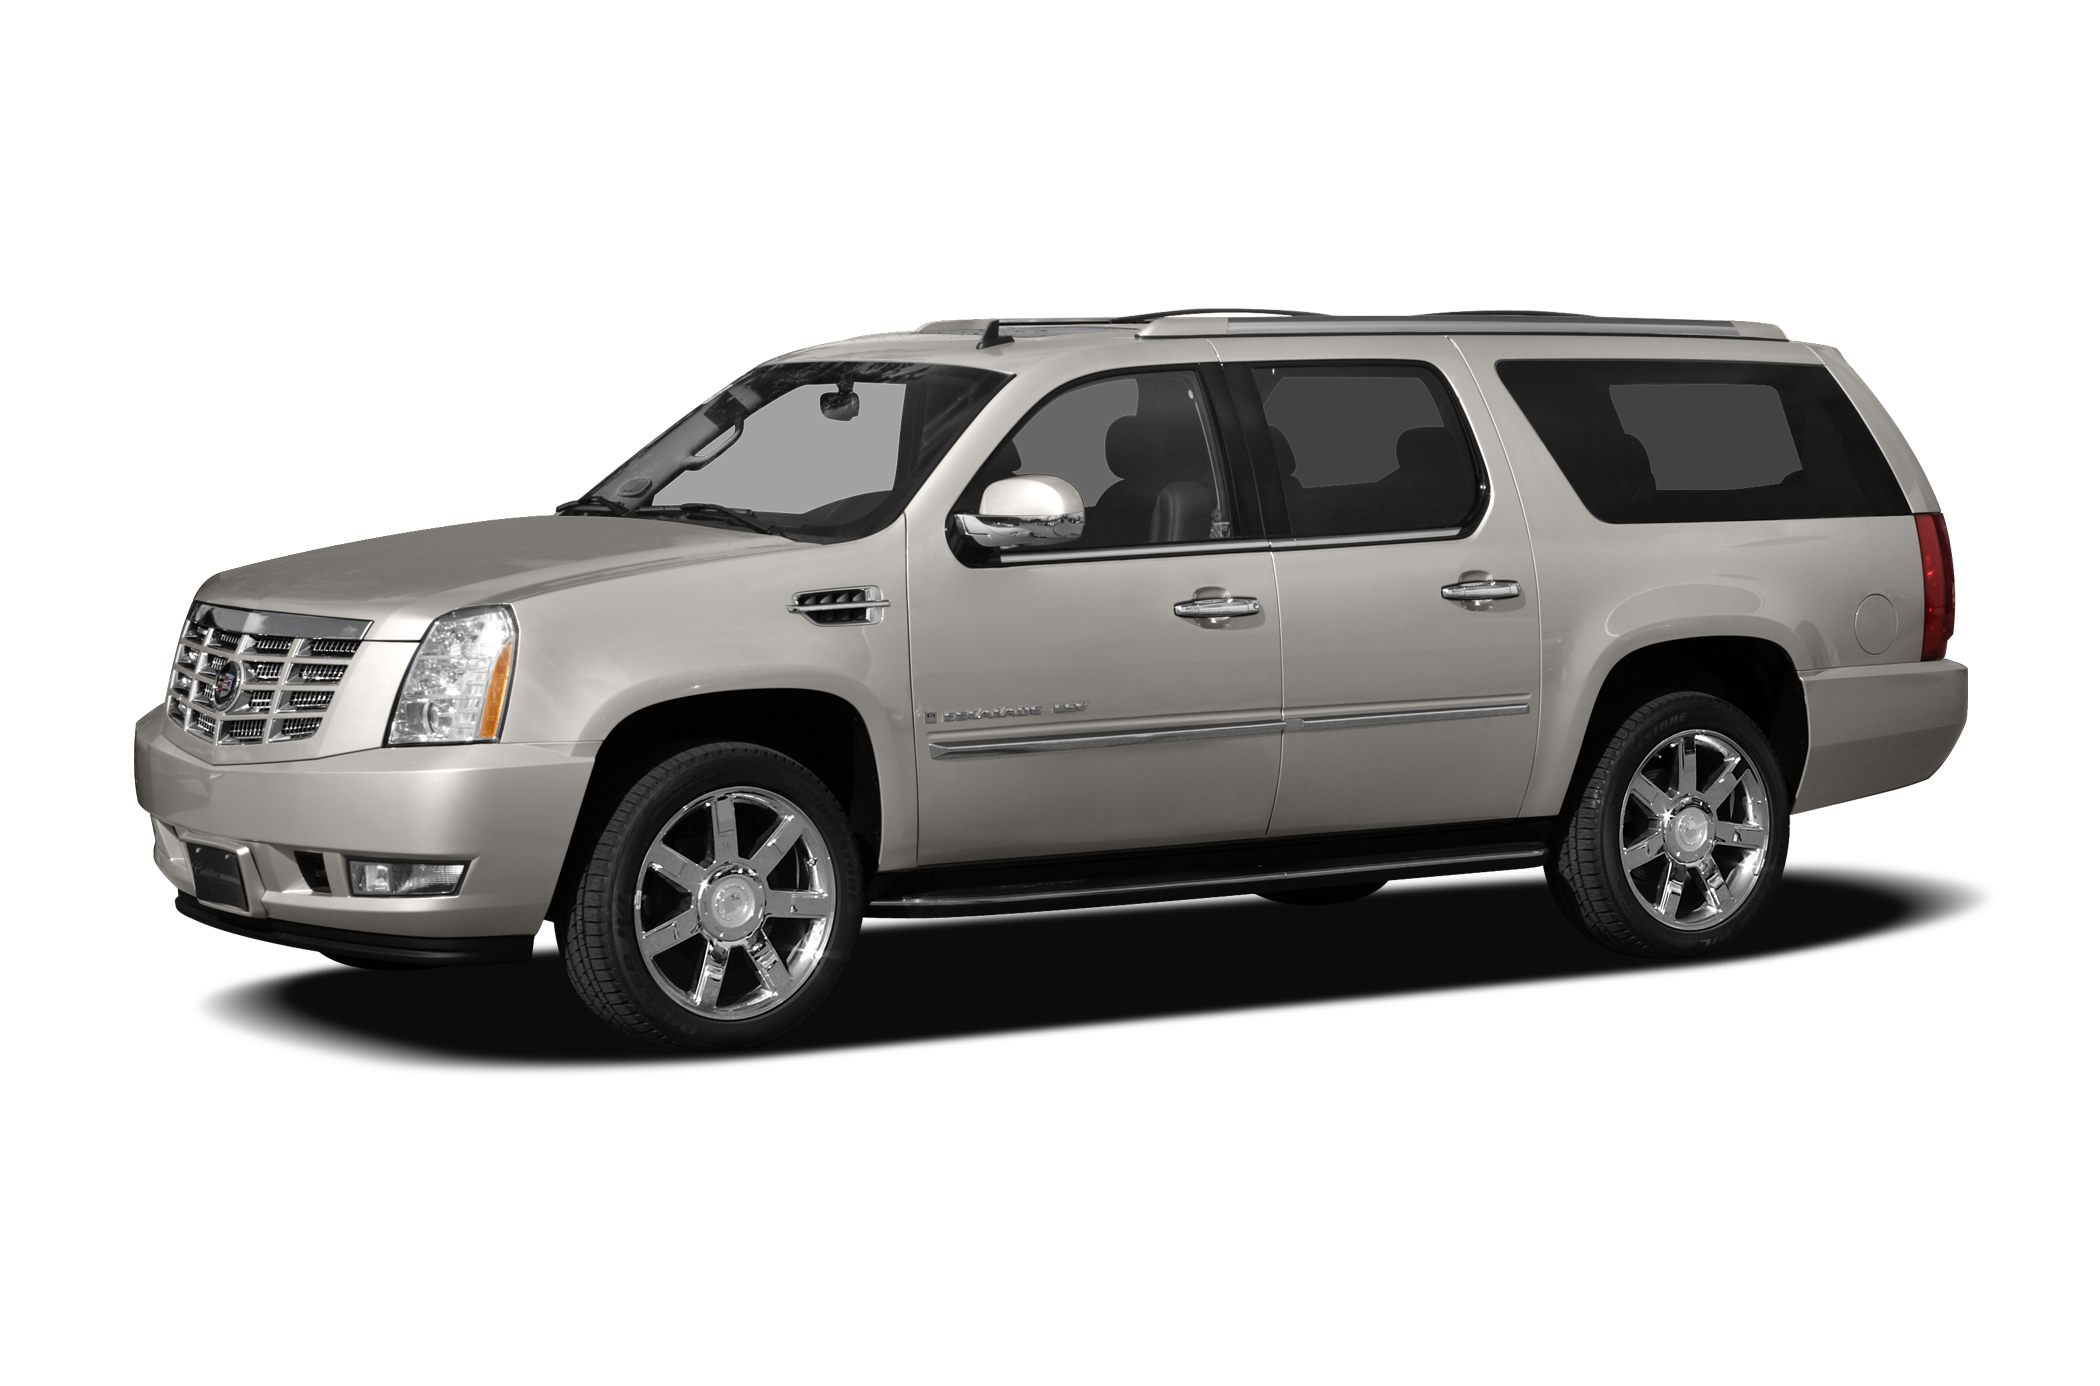 2009 Cadillac Escalade ESV SUV for sale in Fresno for $29,900 with 80,219 miles